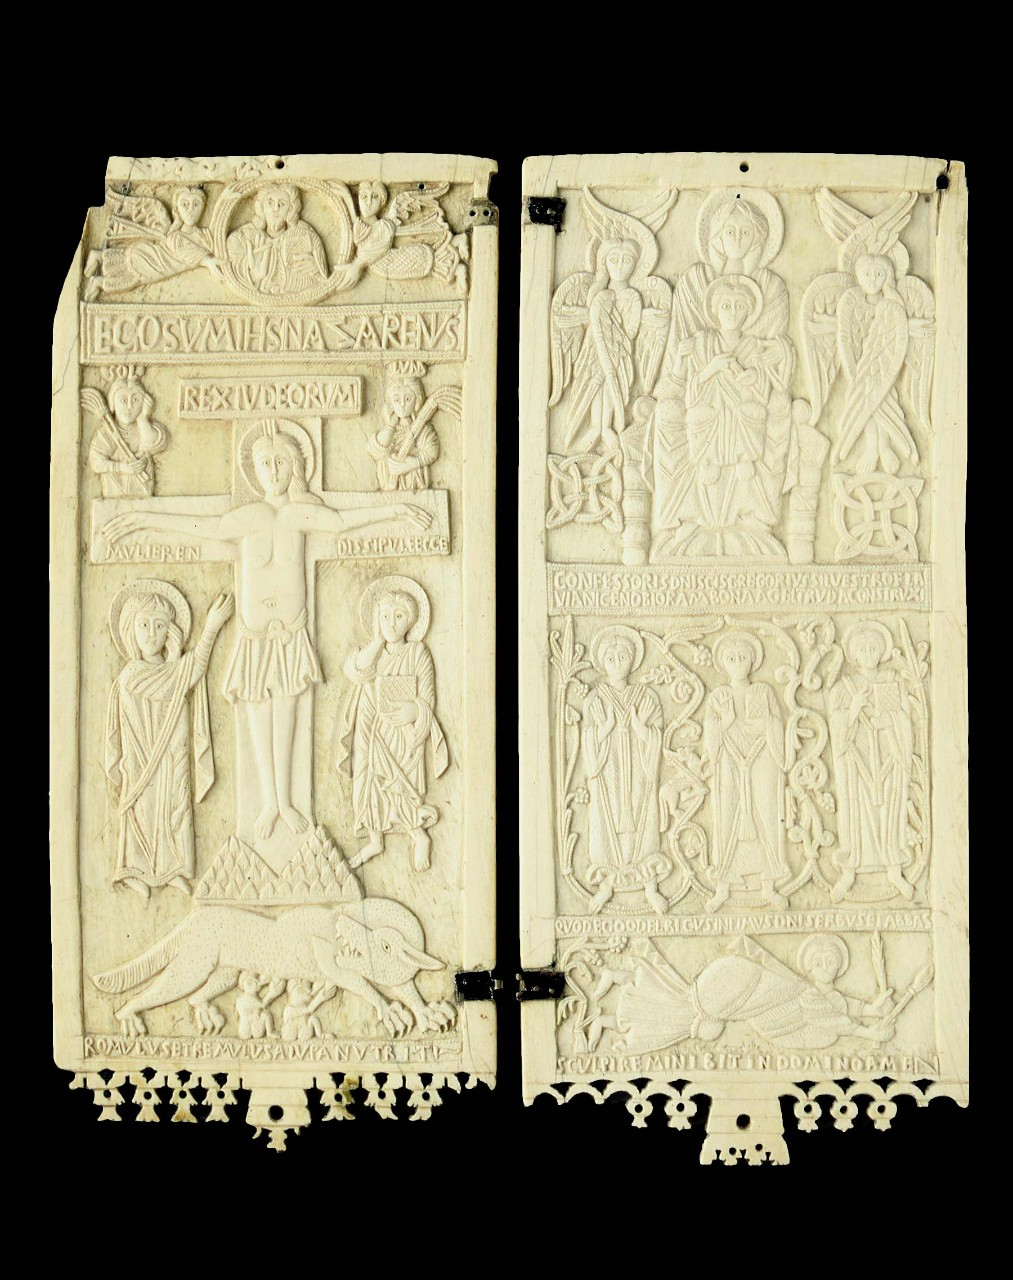 lombard artist diptych in ivory vatican museums